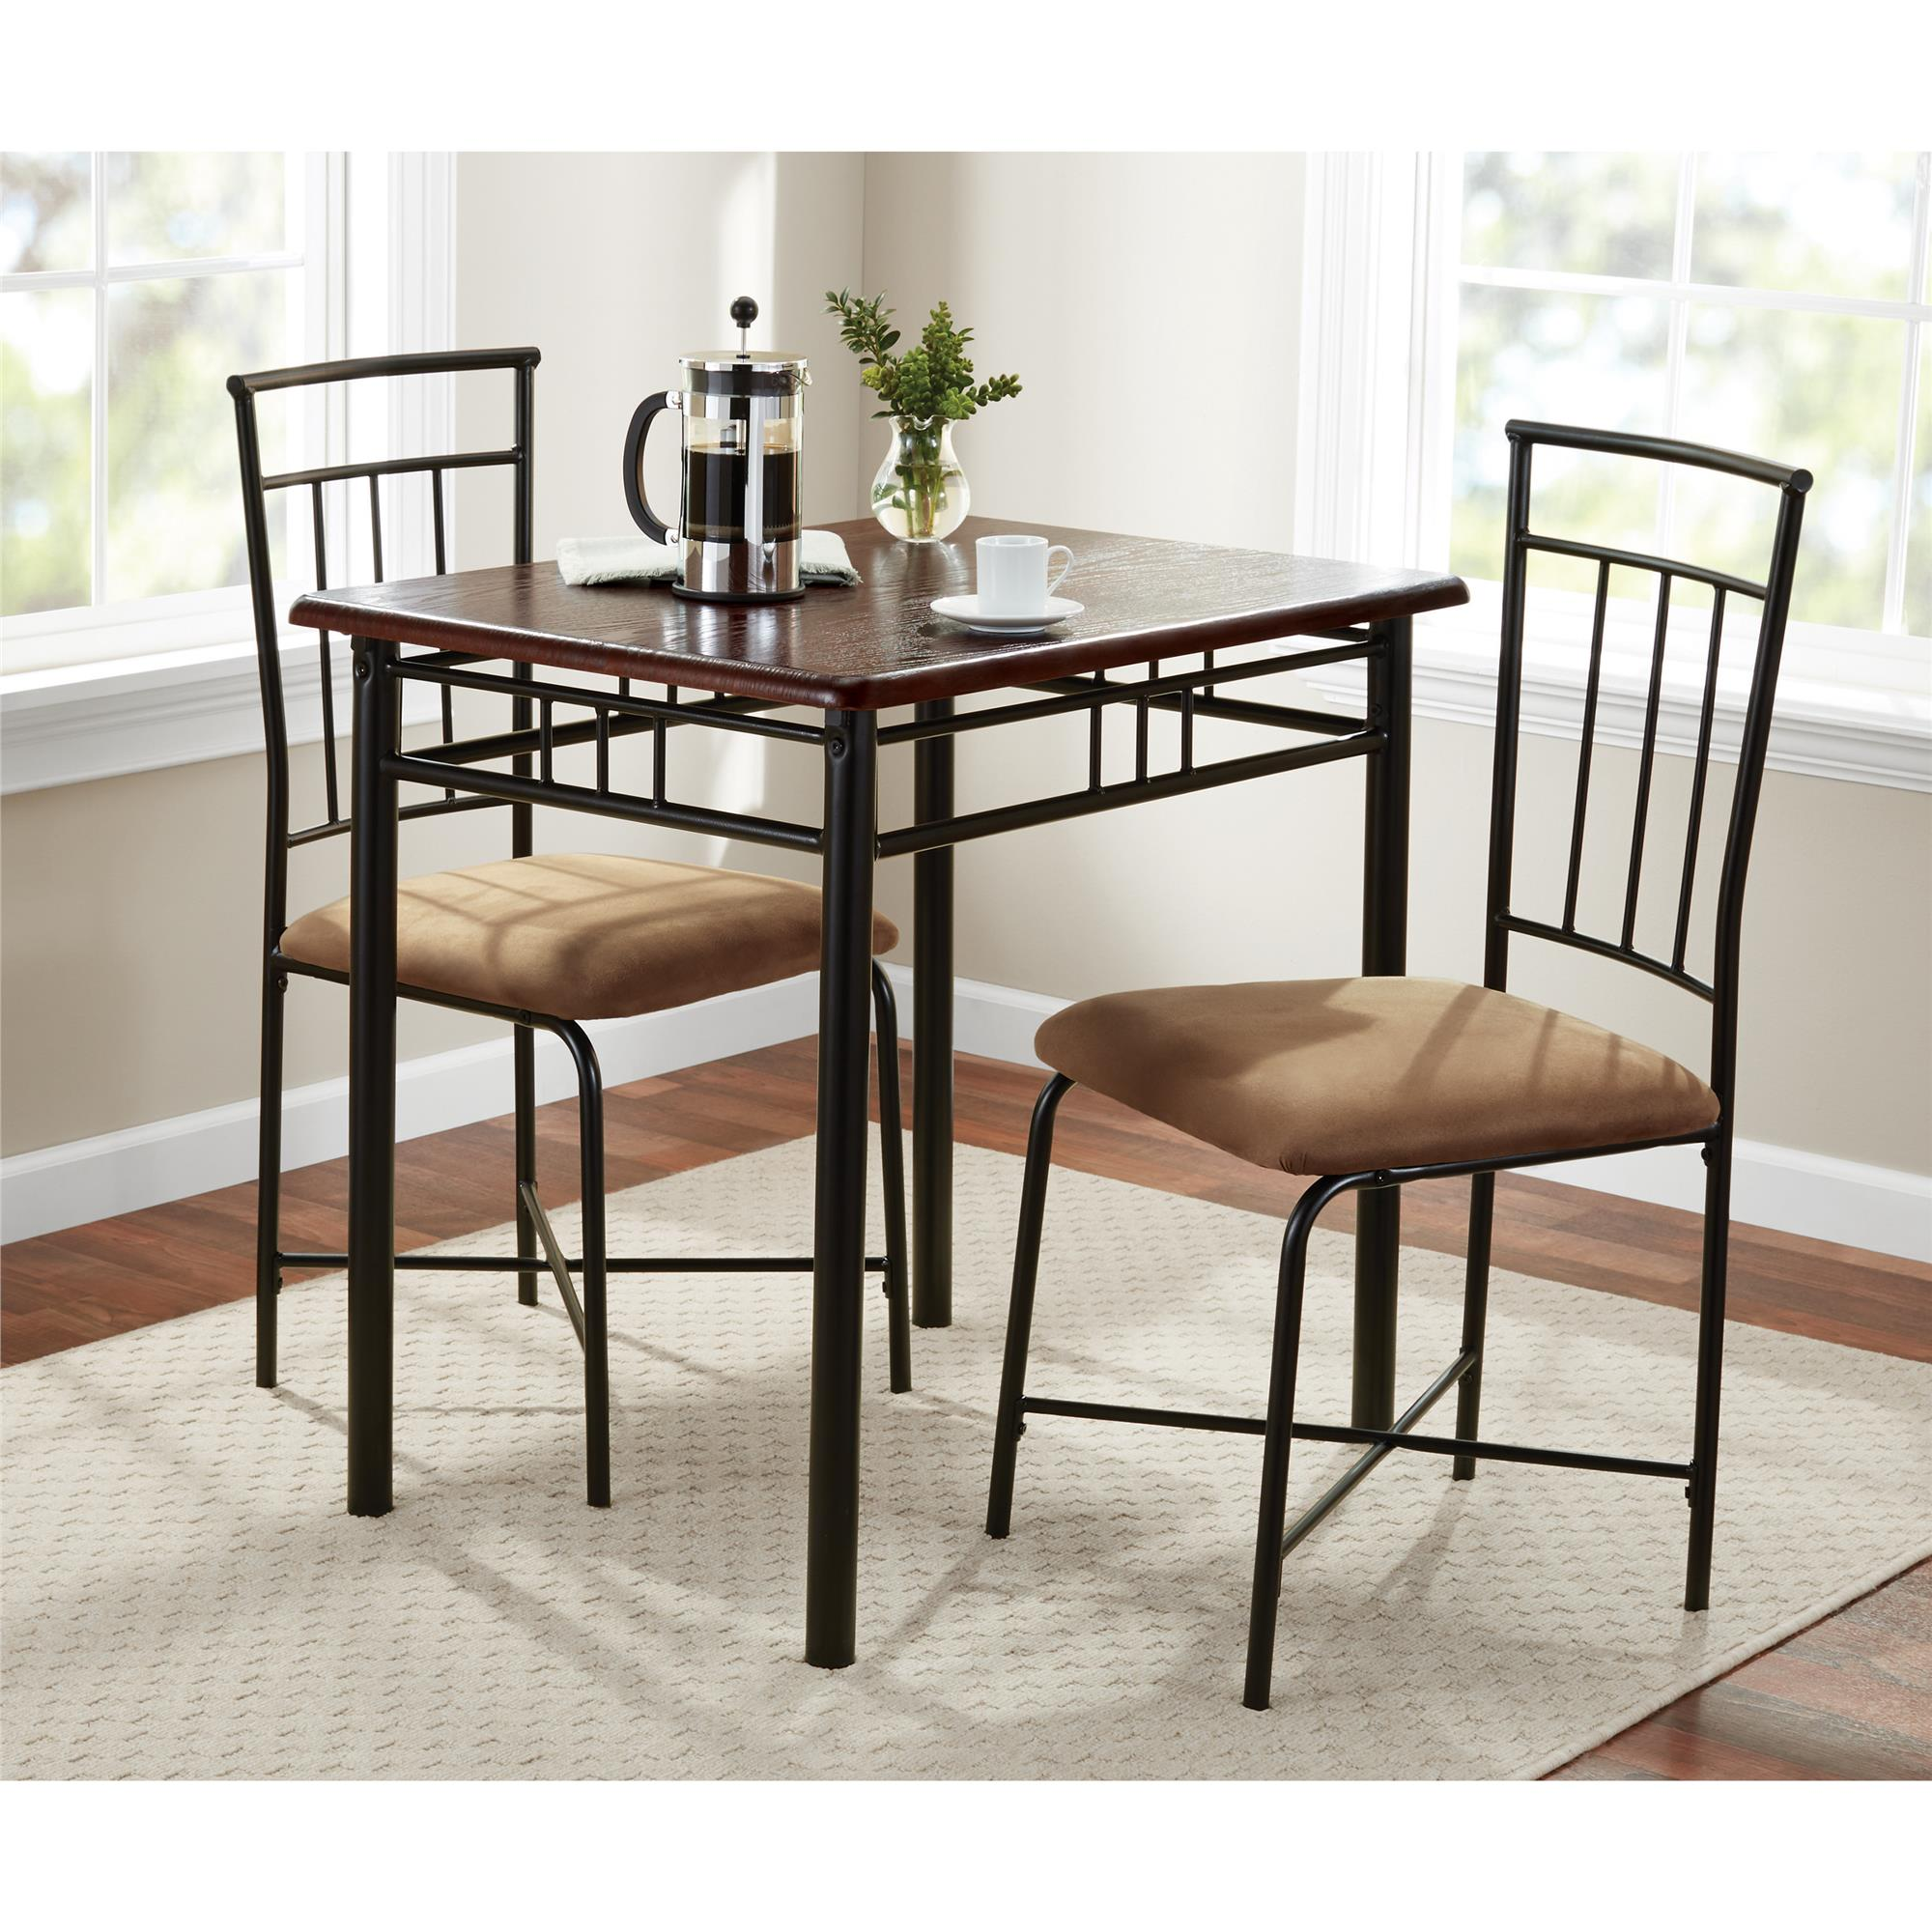 Wonderful Mainstays 3 Piece Wood And Metal Dining Set   Walmart.com